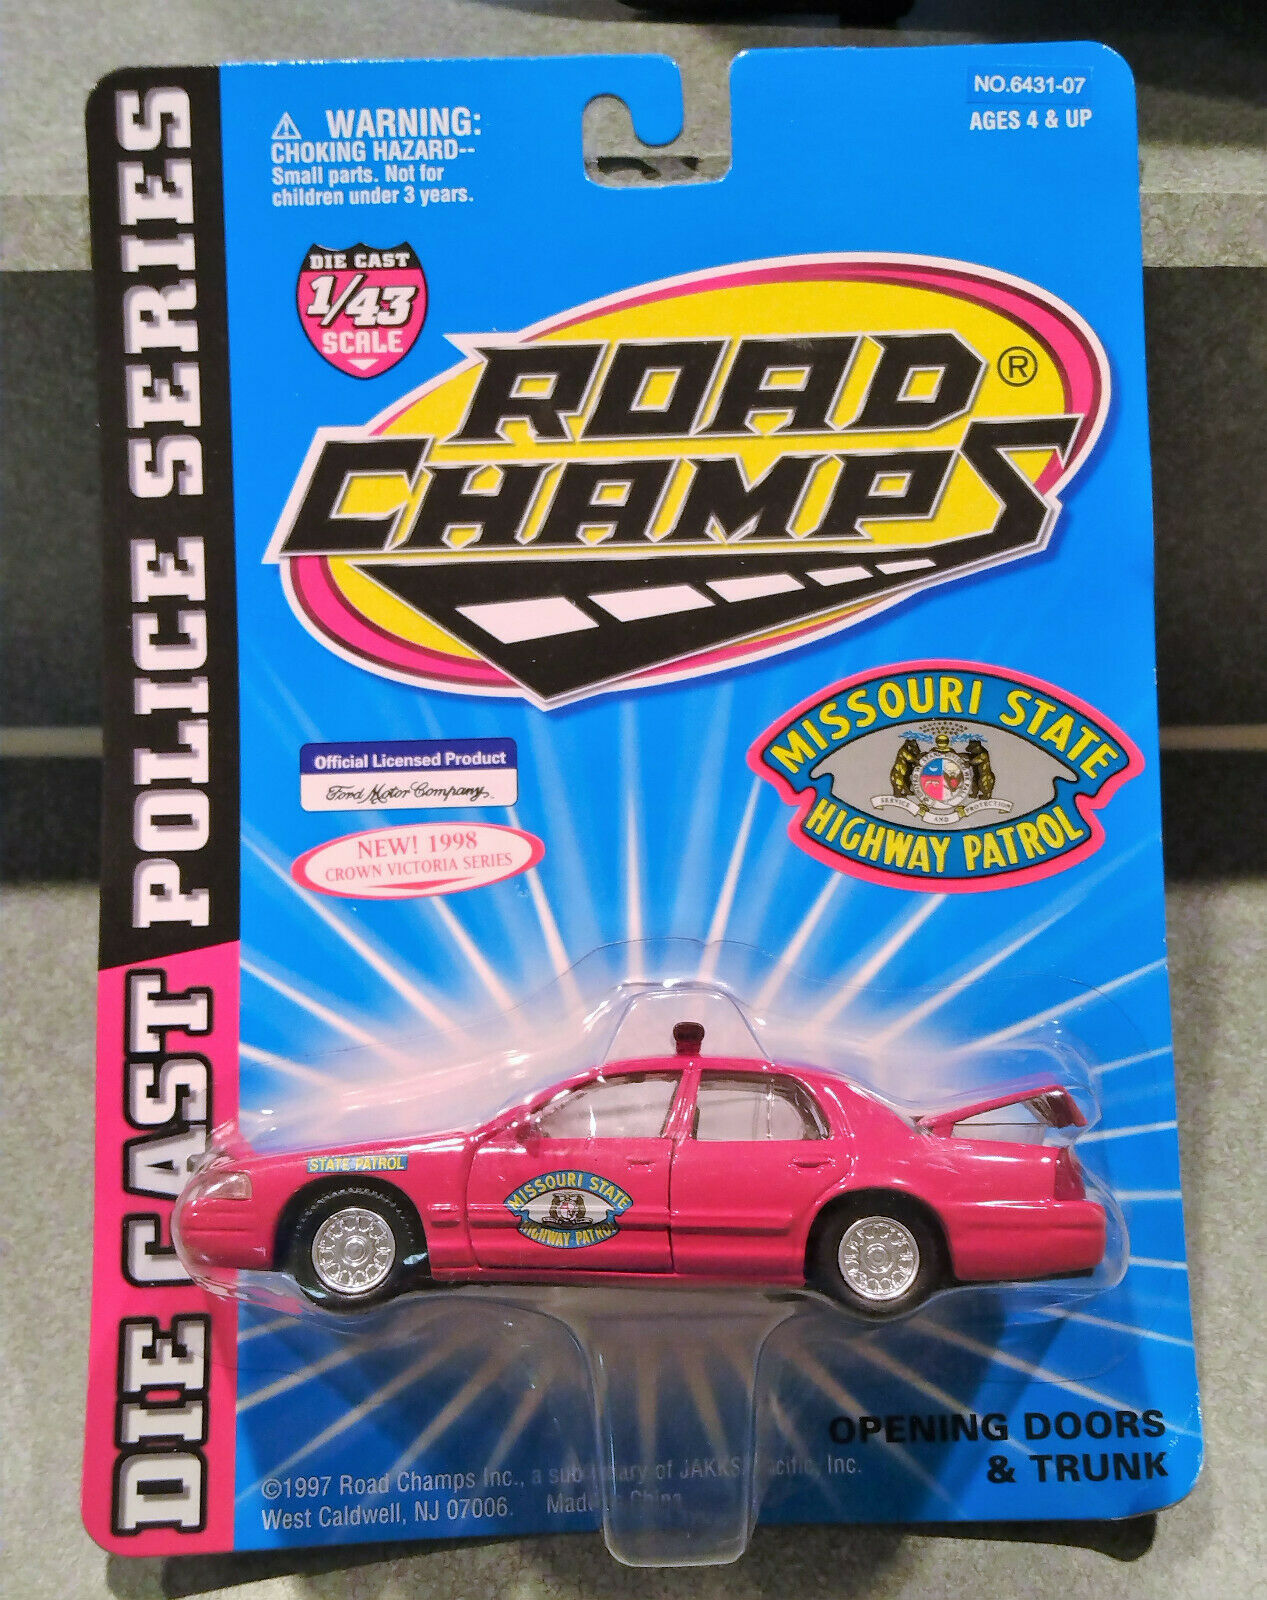 NEW Mssouri Highway Patrol 1998 Road Champs Police Series 1:43 Die Cast Car - $7.55